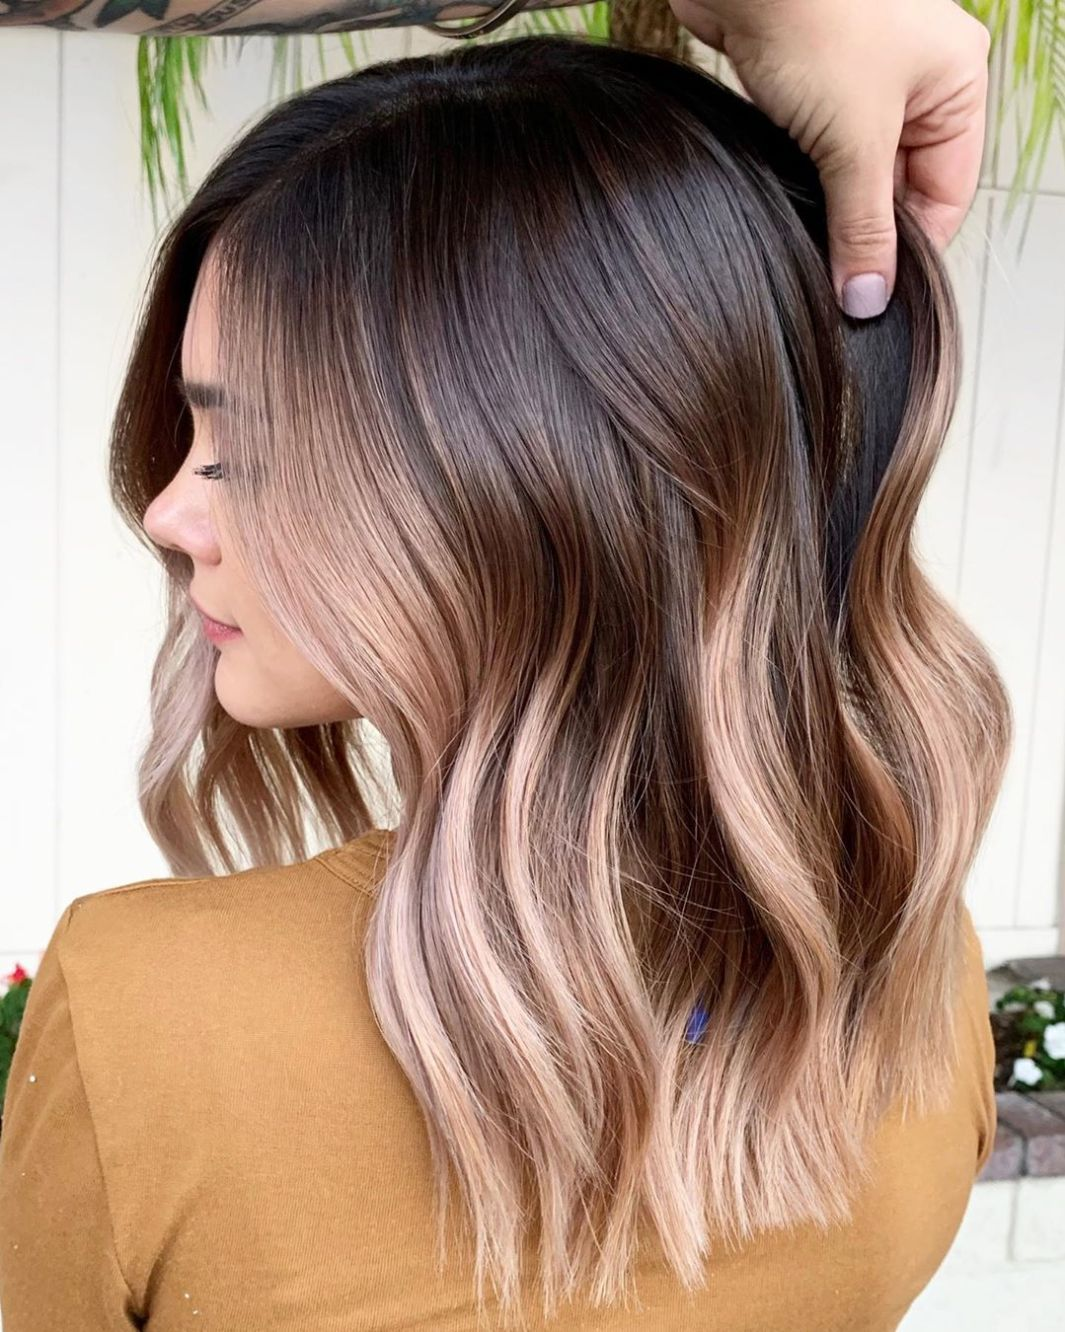 50 Best Hair Colors New Hair Color Ideas Trends For 2020 Hair Adviser Welcome To Blog In 2020 Cool Hair Color Hair Styles Brunette Hair Color